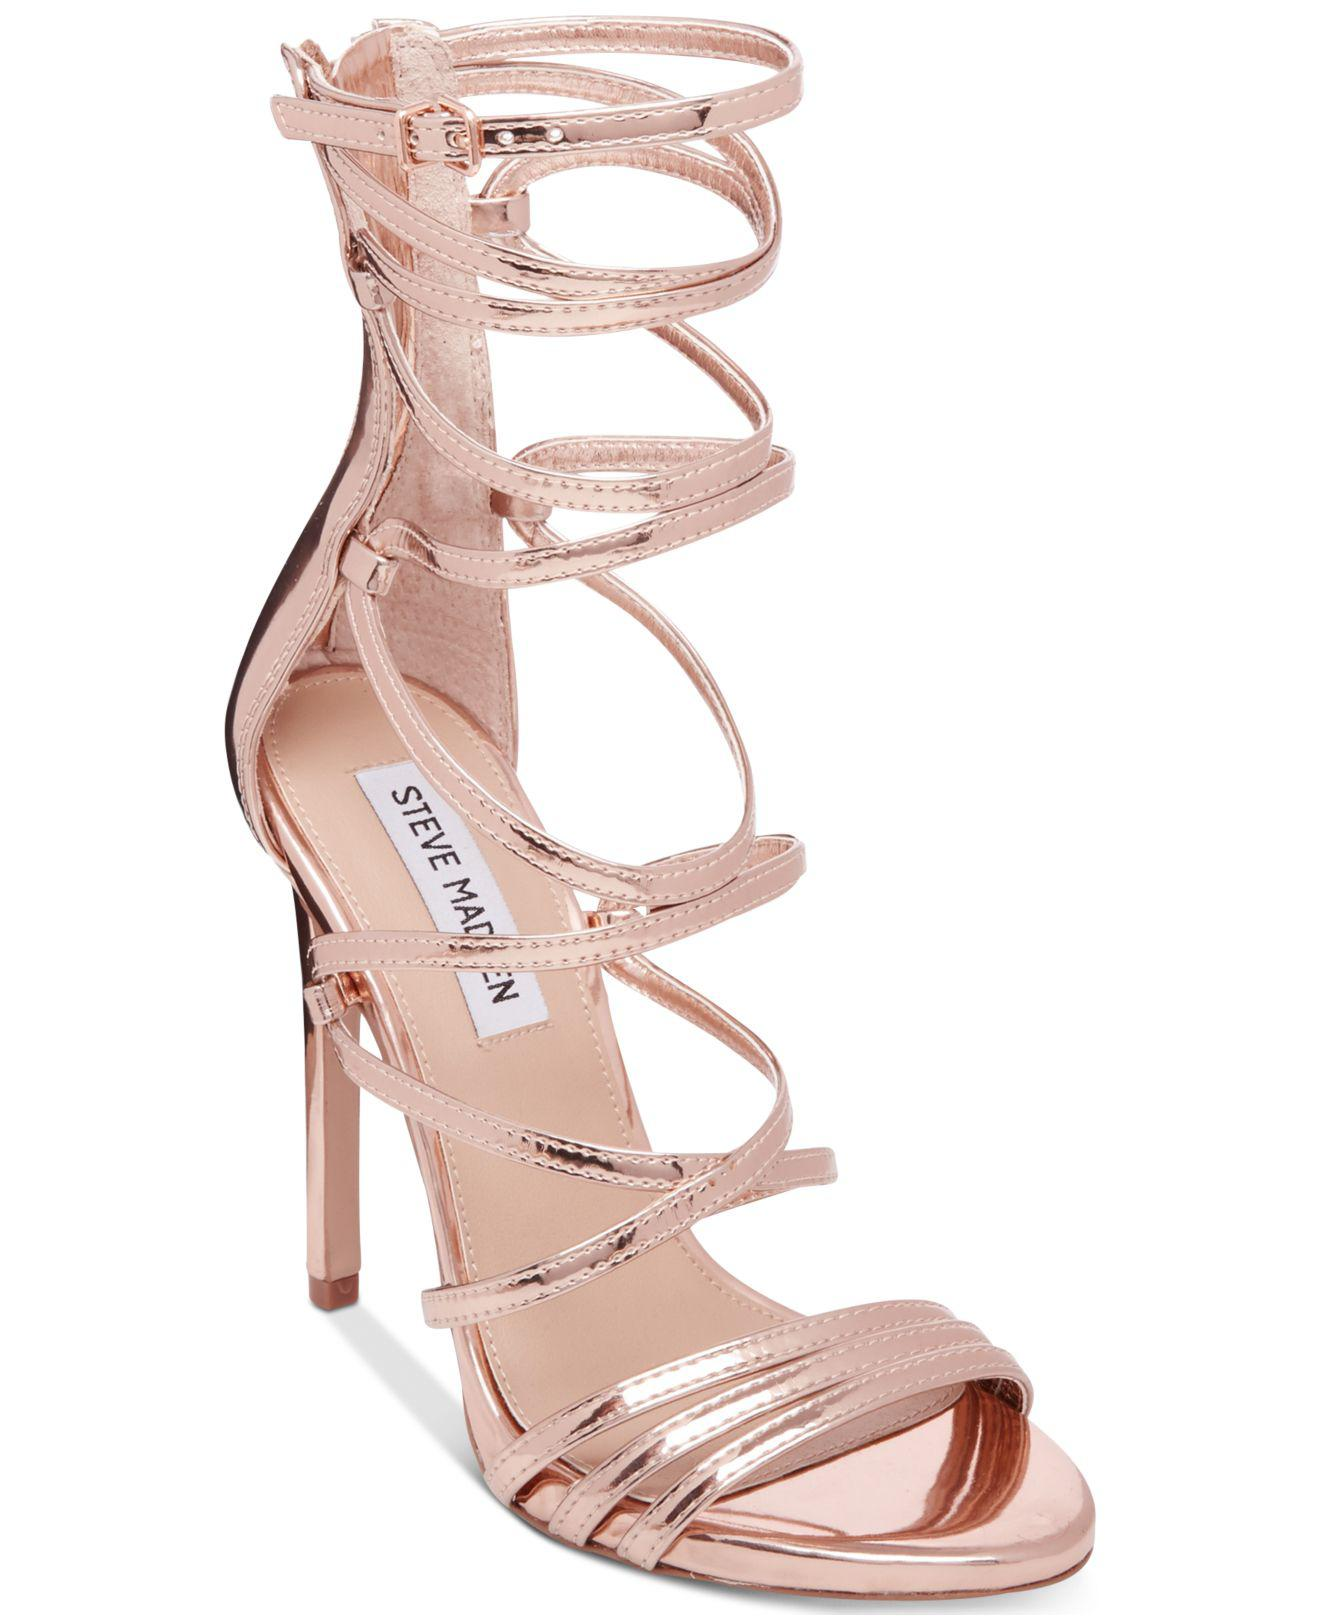 Womens Flaunt Open Toe Heels Steve Madden Cheap Shop For Clearance Cheap Real Top Quality Sale Online New Quality R1YyBfhtN